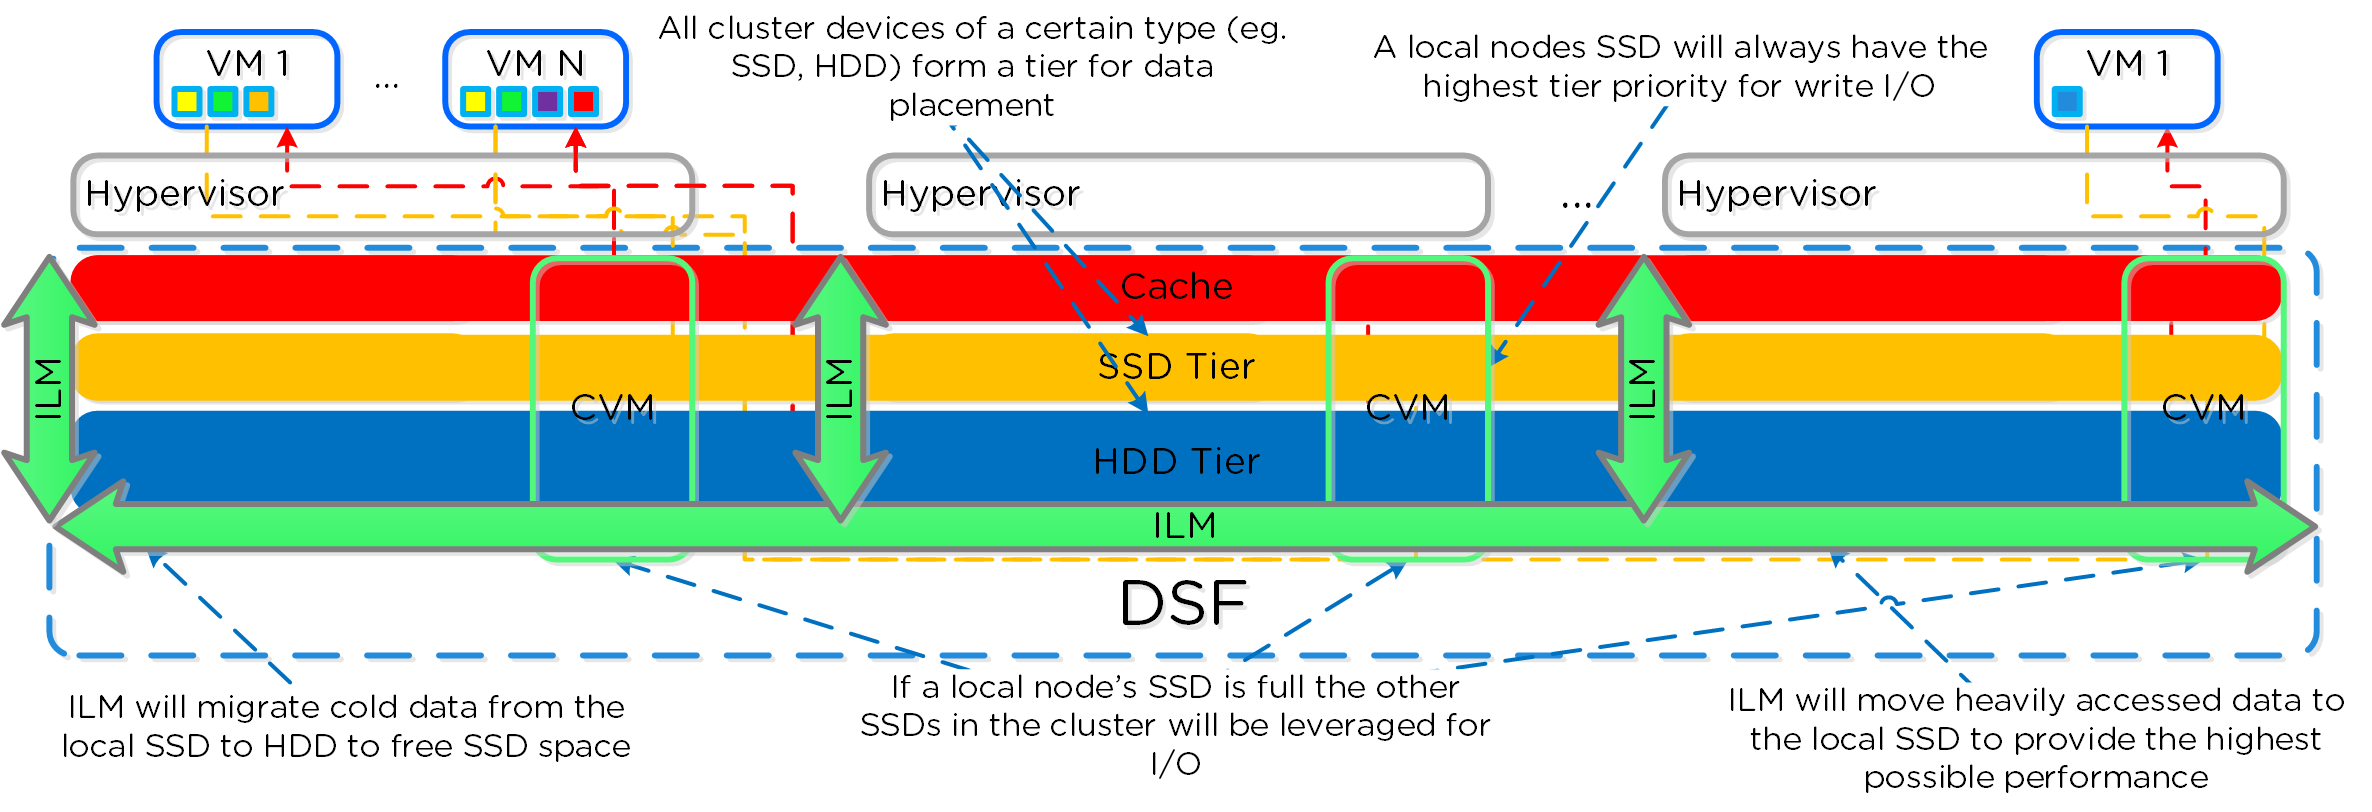 DSF Cluster-wide Tiering